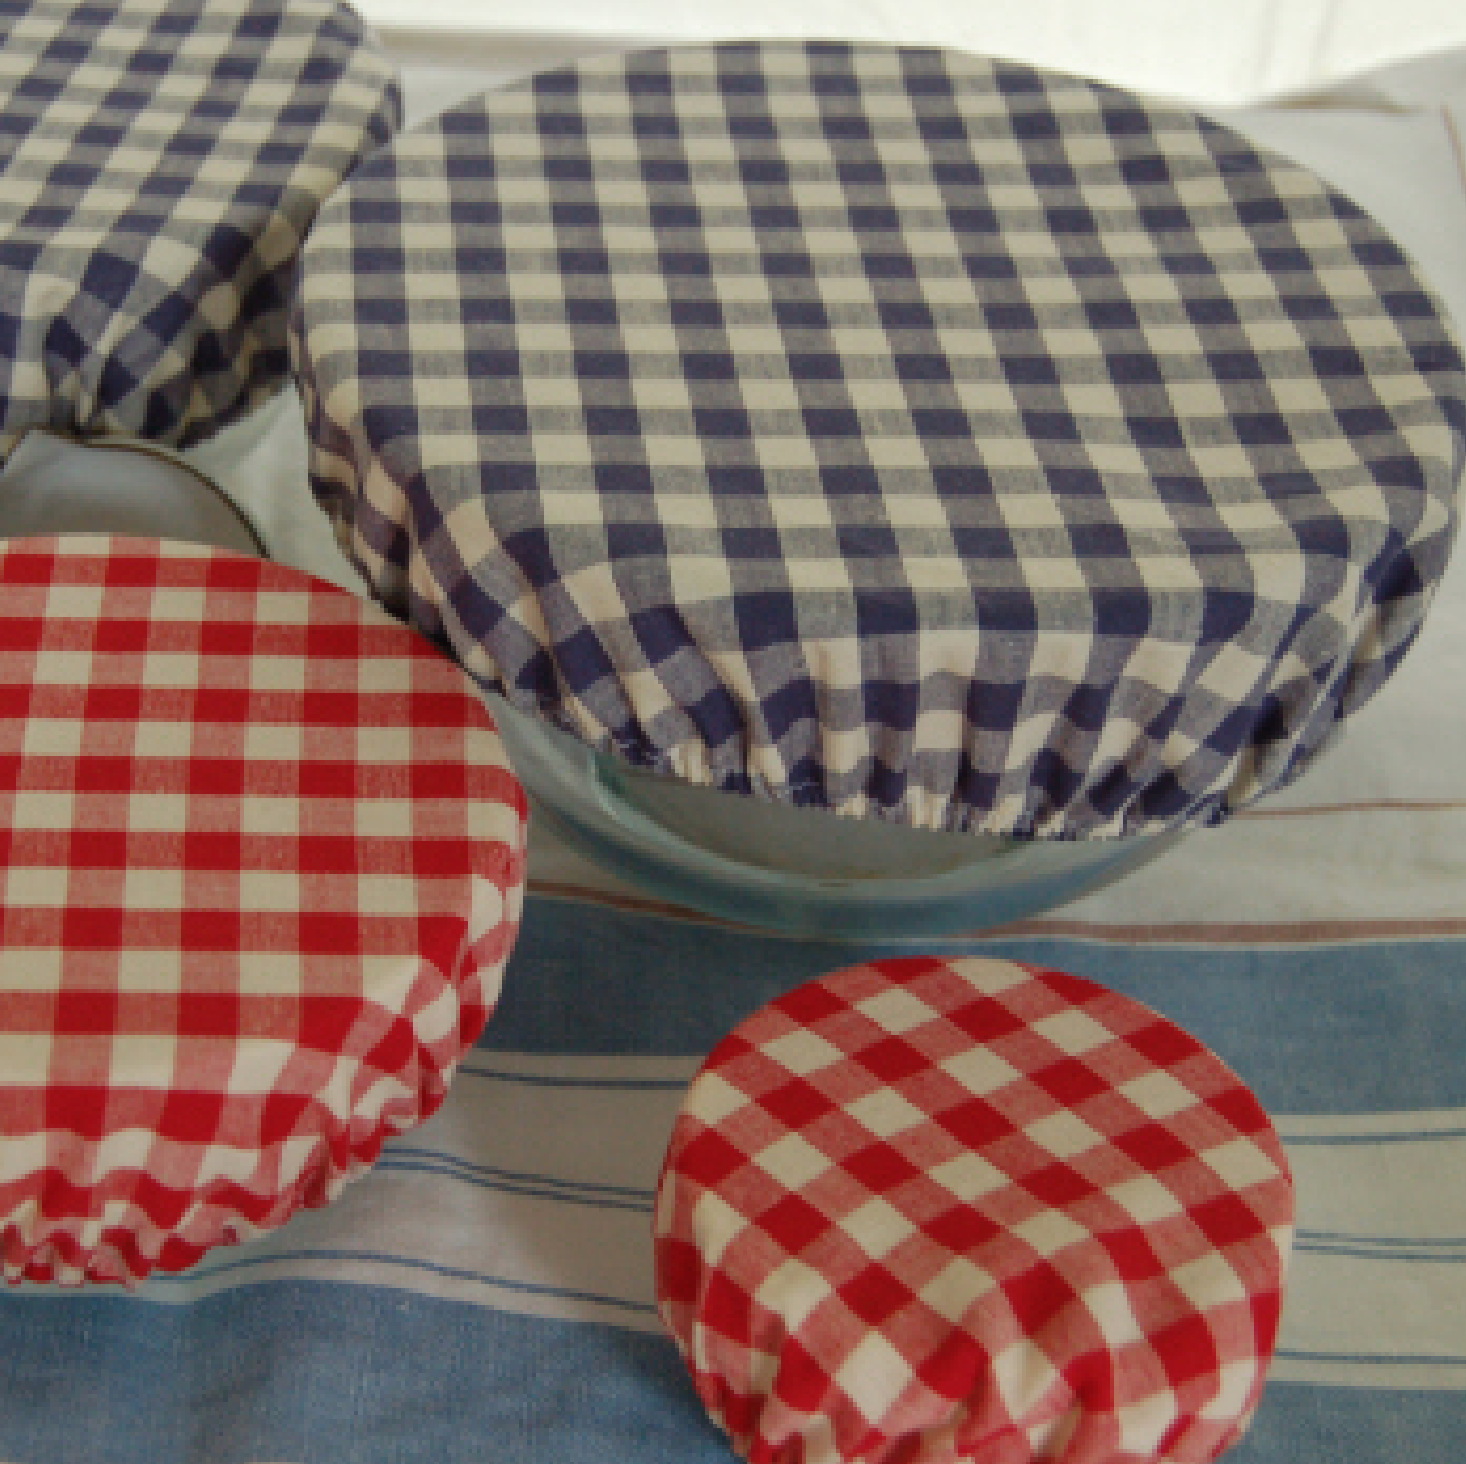 Cotton Gingham Bowl Covers - Set of 6 in 2 colours and 3 sizes.